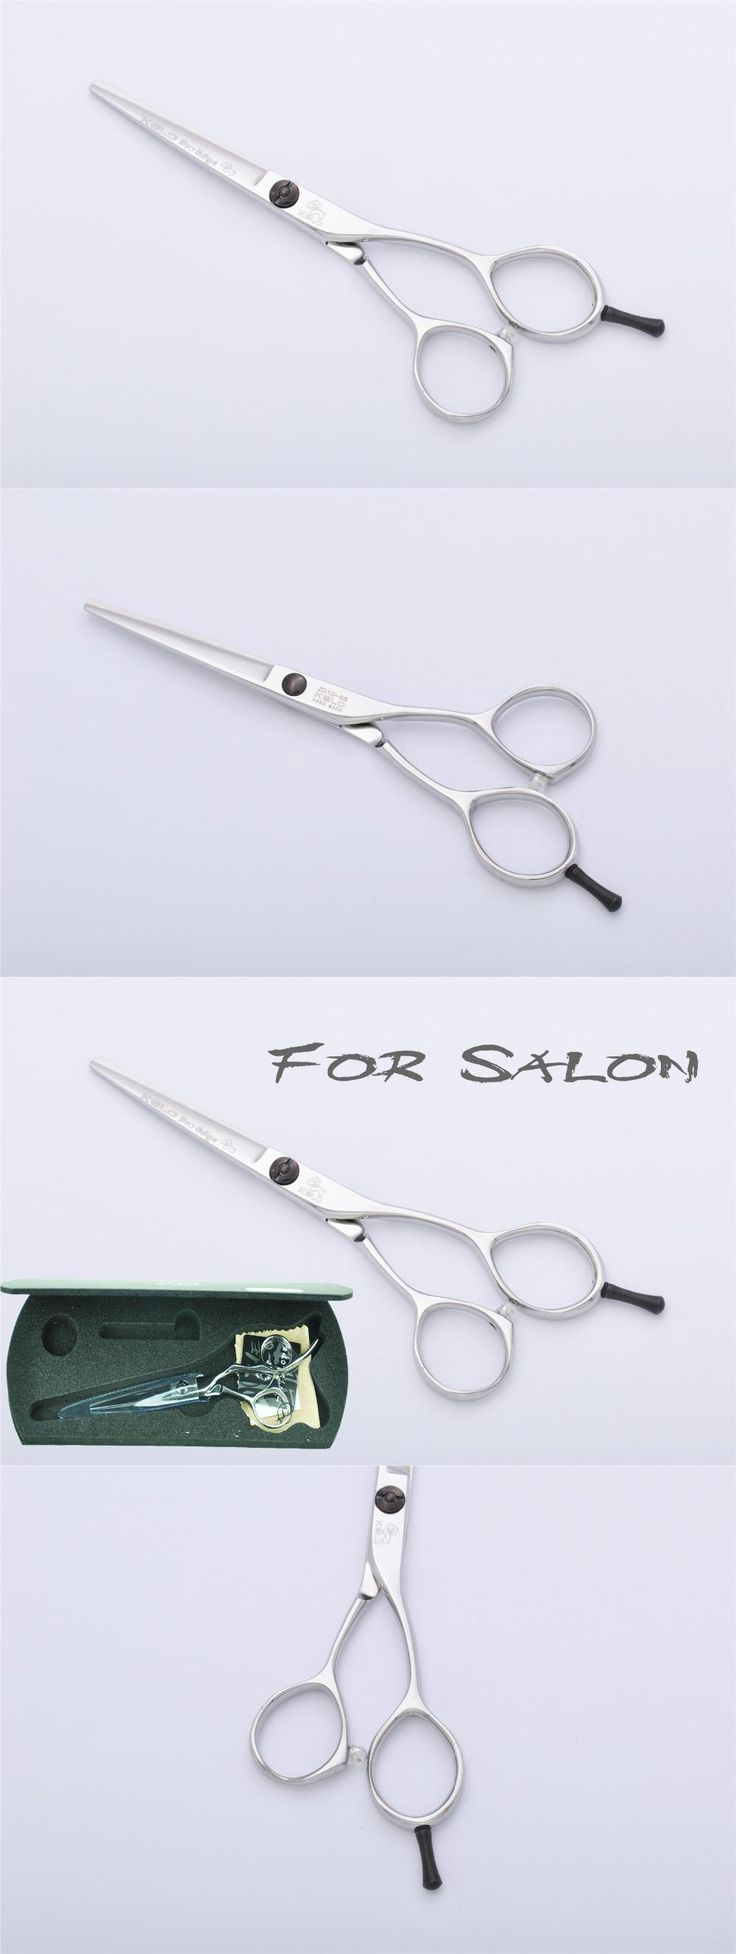 "5.5"" Steel Professional Barber Salon Hair Cutting Scissors / Shears Sharp Blades for Hairstyling and Thinning ZD10-I-55A"